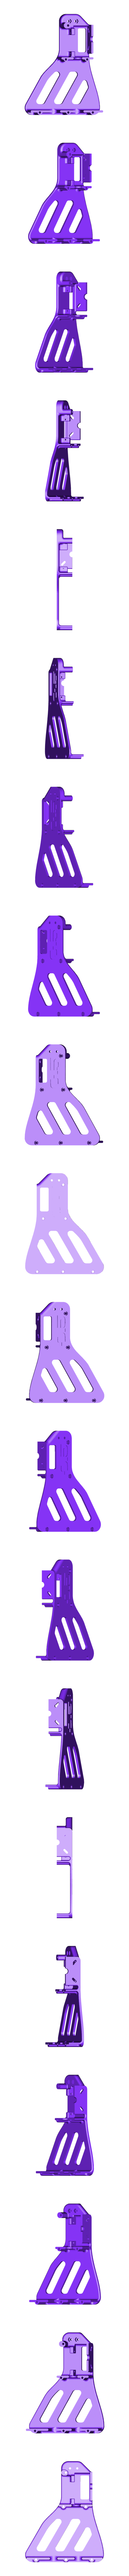 Backpack Gauche 0.5.STL Download STL file RC OXY 0.5 Paramotor Boat • Object to 3D print, robotprint3d